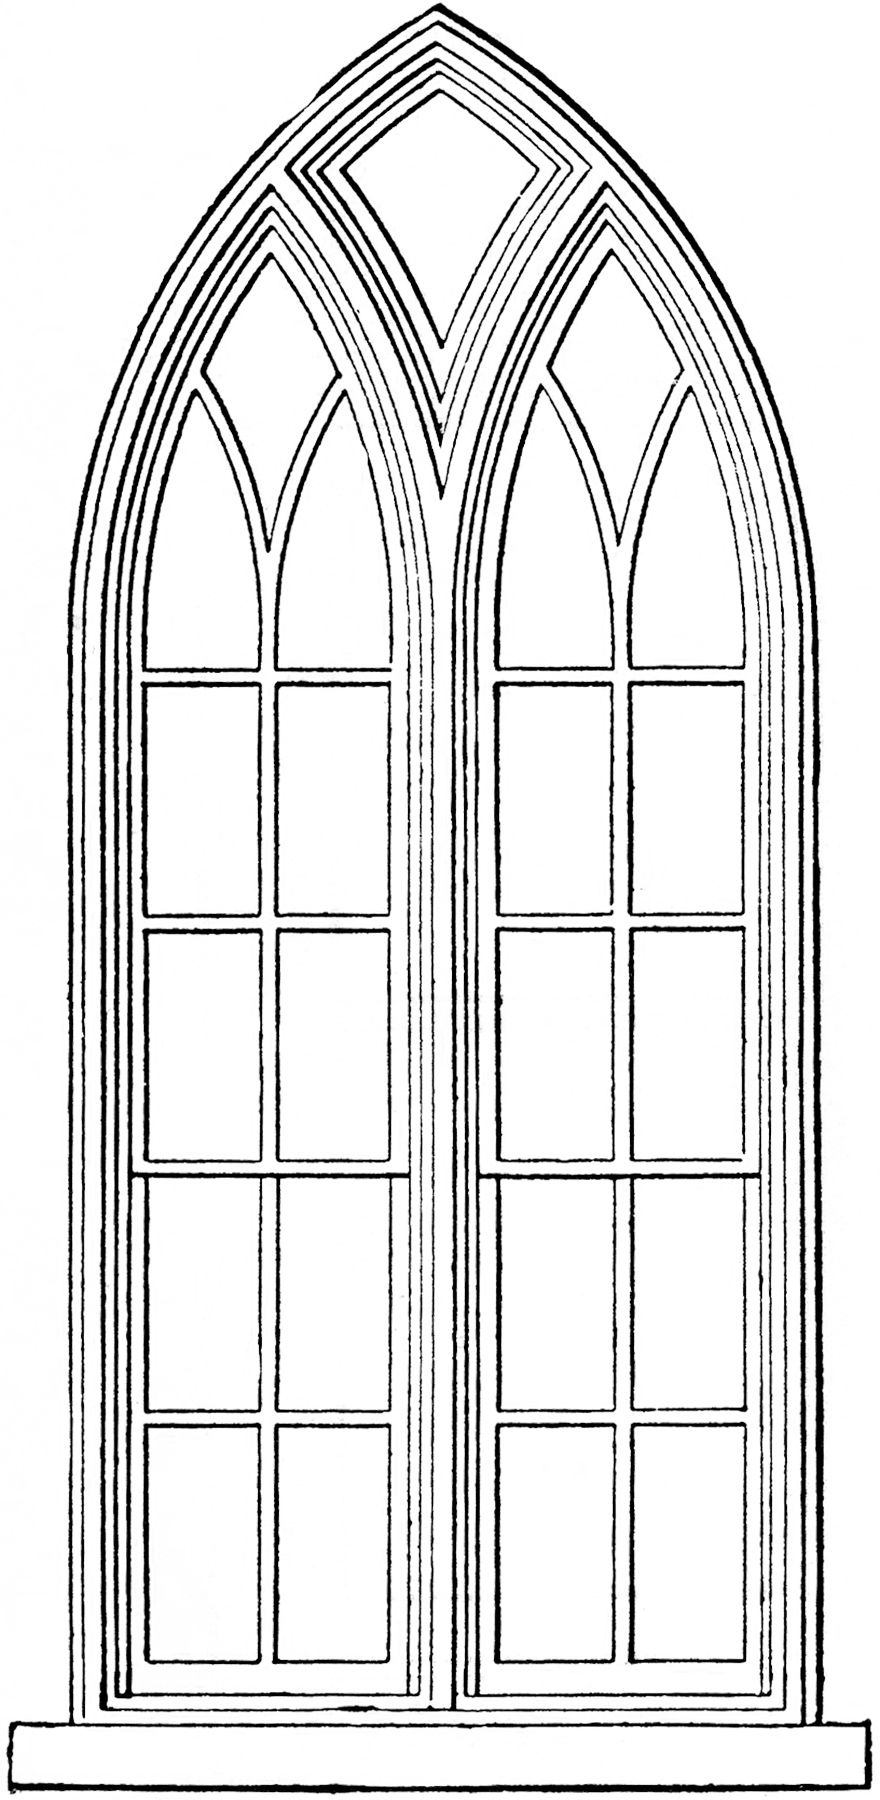 Gothic church windows clip art church windows clip art for Window design clipart